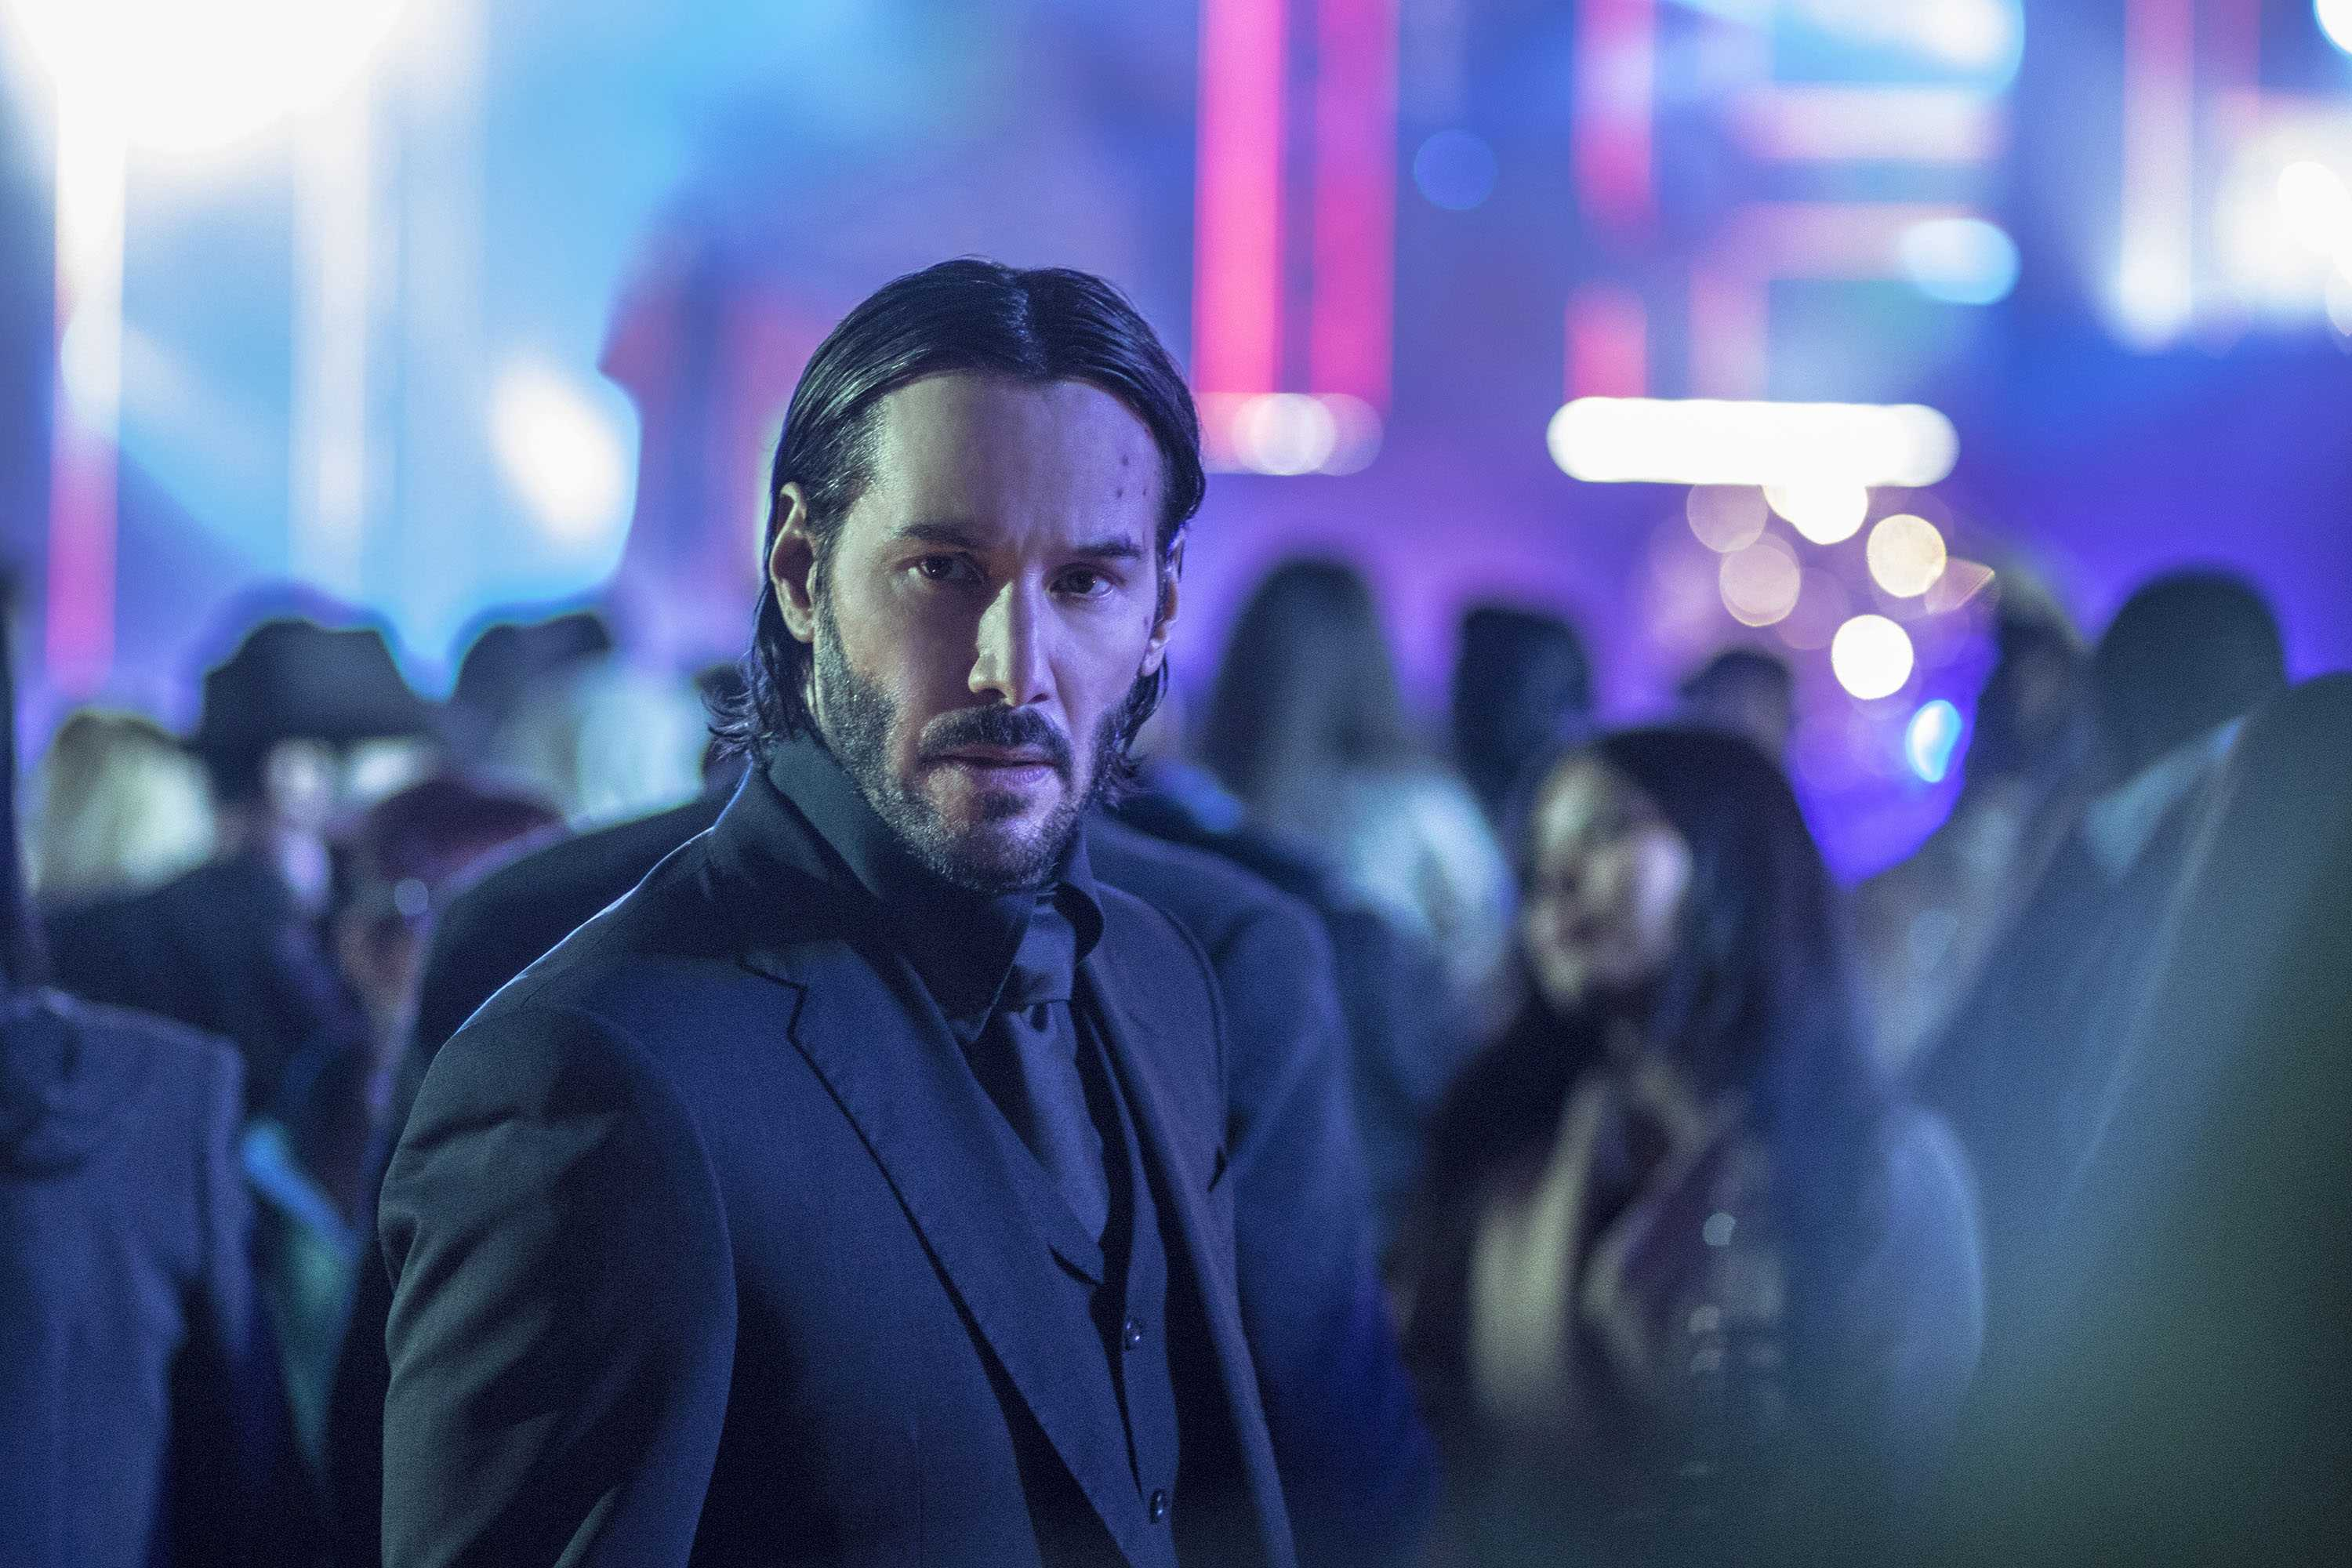 Keanu Reeves as John Wick in a scene from the movie